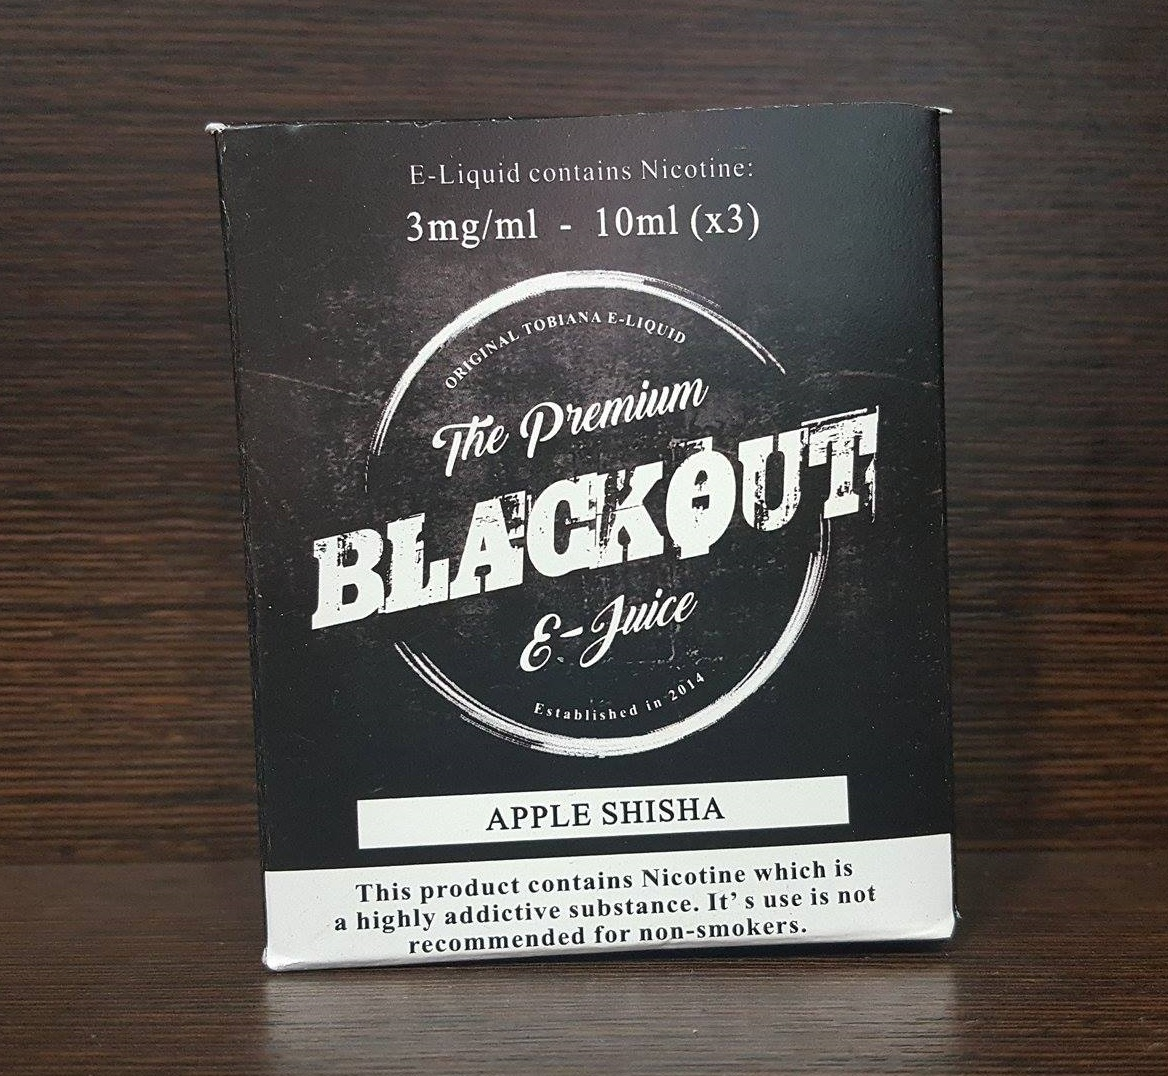 blackout-APPLE-SHISHA-vapeport